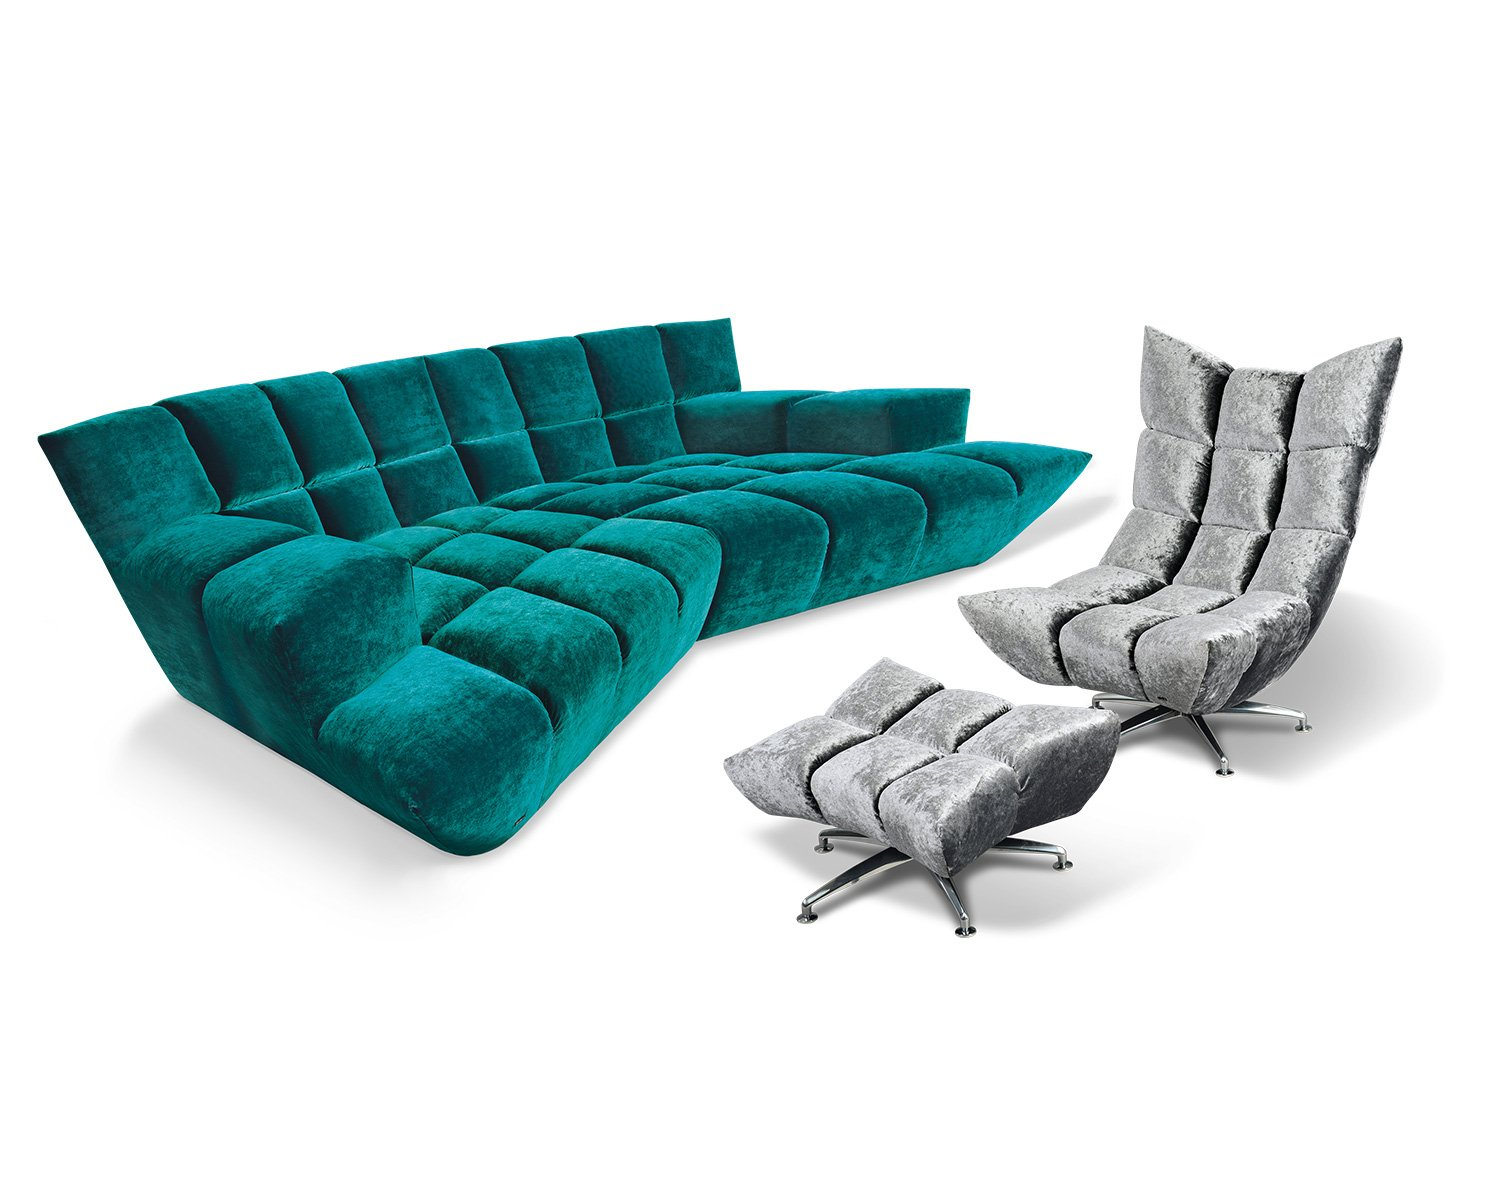 Couchgarnituren Mit Sessel Couch Und Sessel Gallery Of Sessel Mit Er Kinosessel Kino Couch